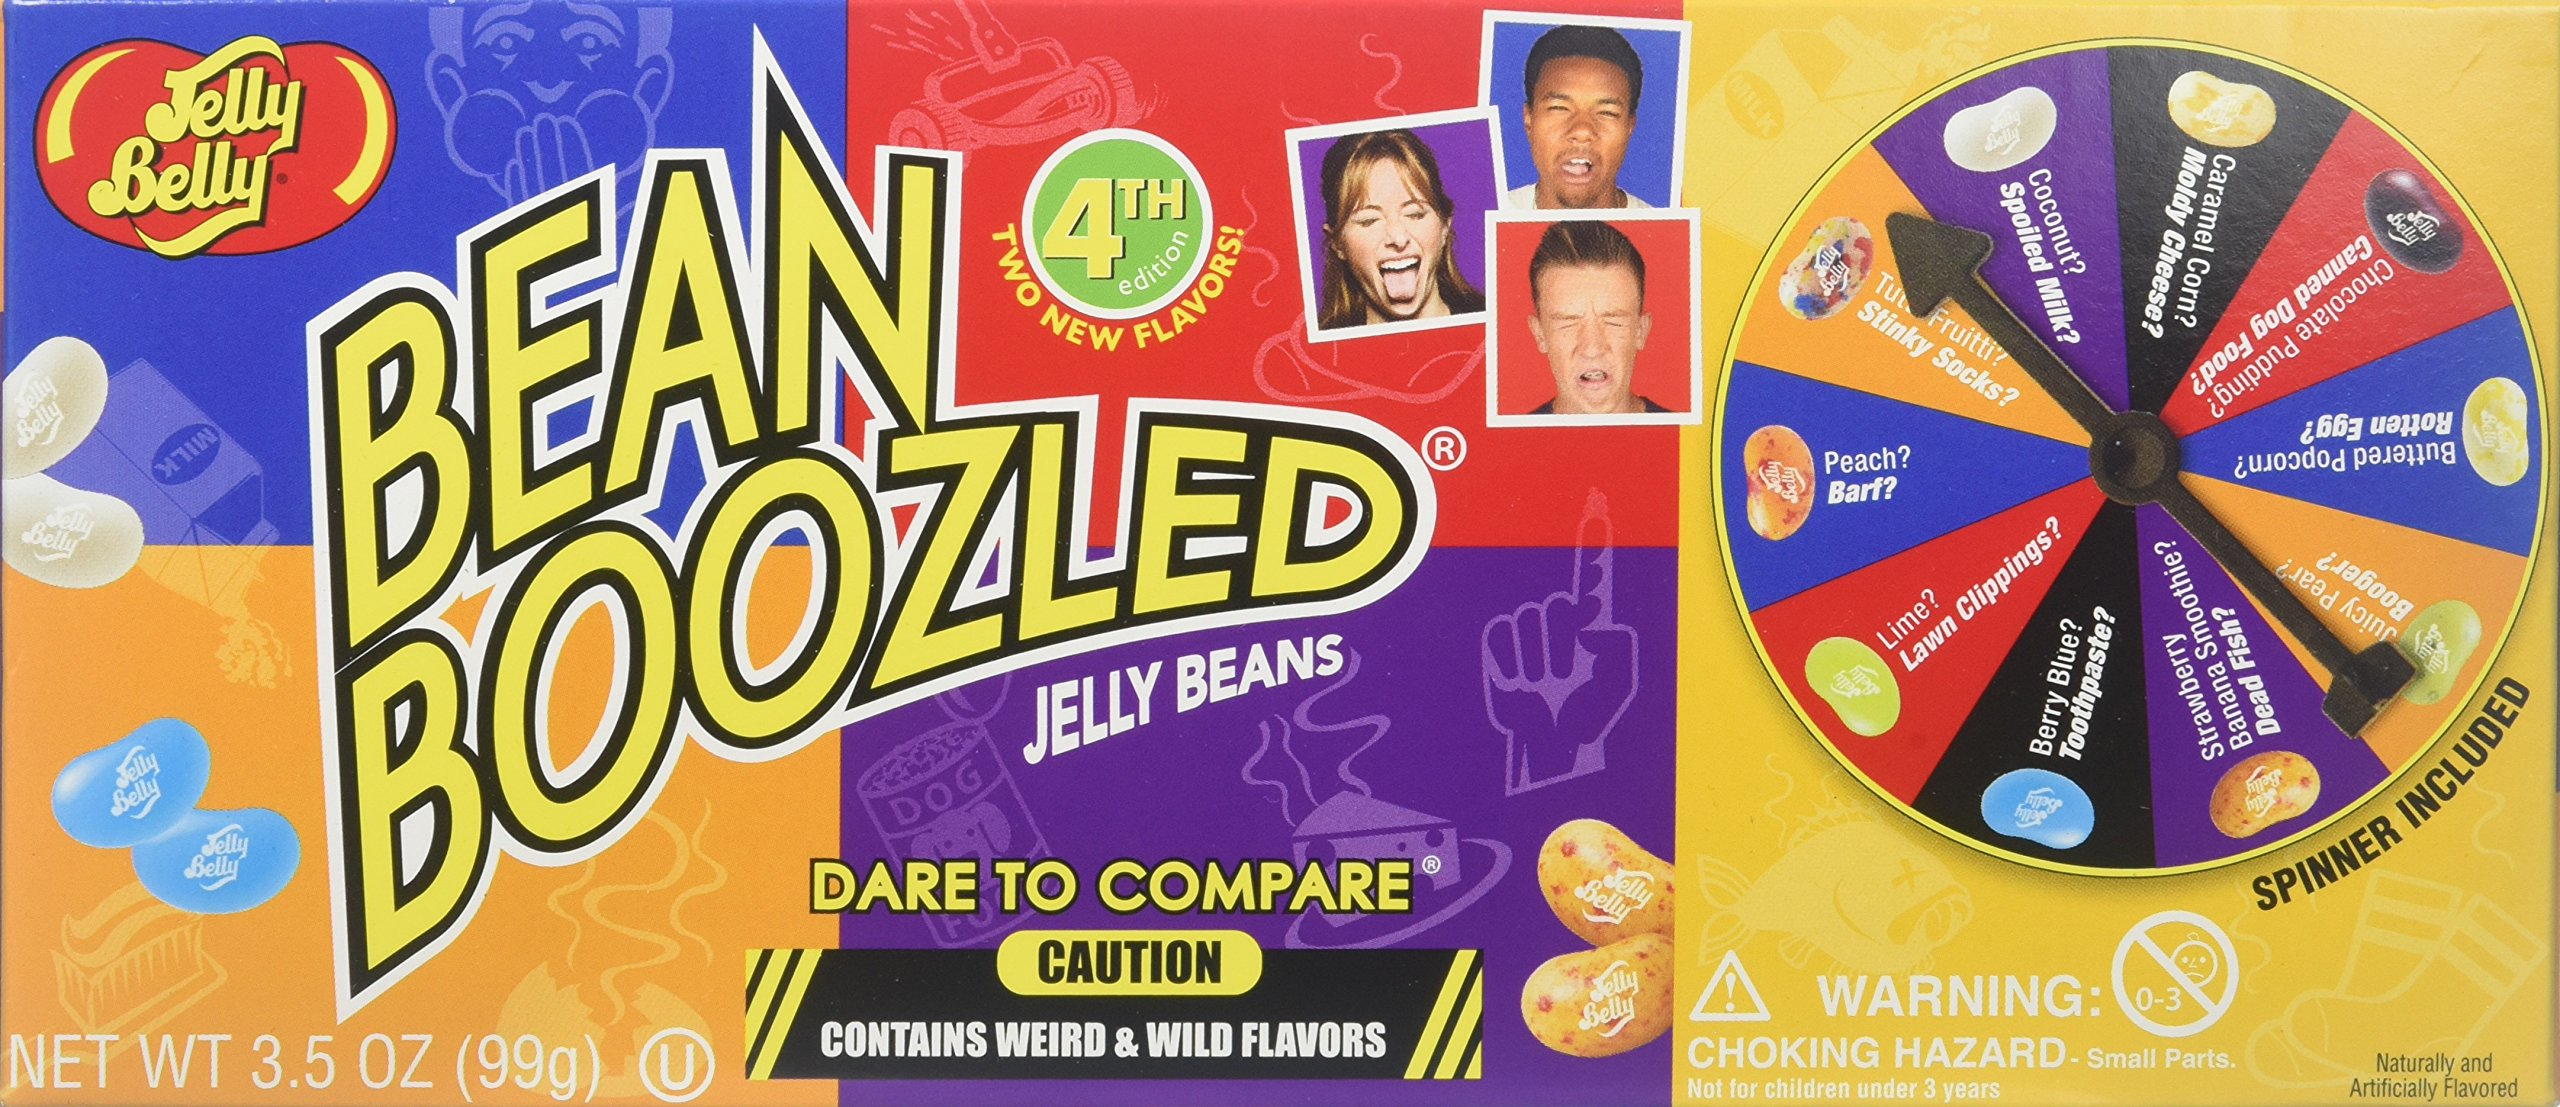 Jelly Belly BeanBoozled Jelly Beans Spinner Gift Box, 4th Edition, 3.5-oz